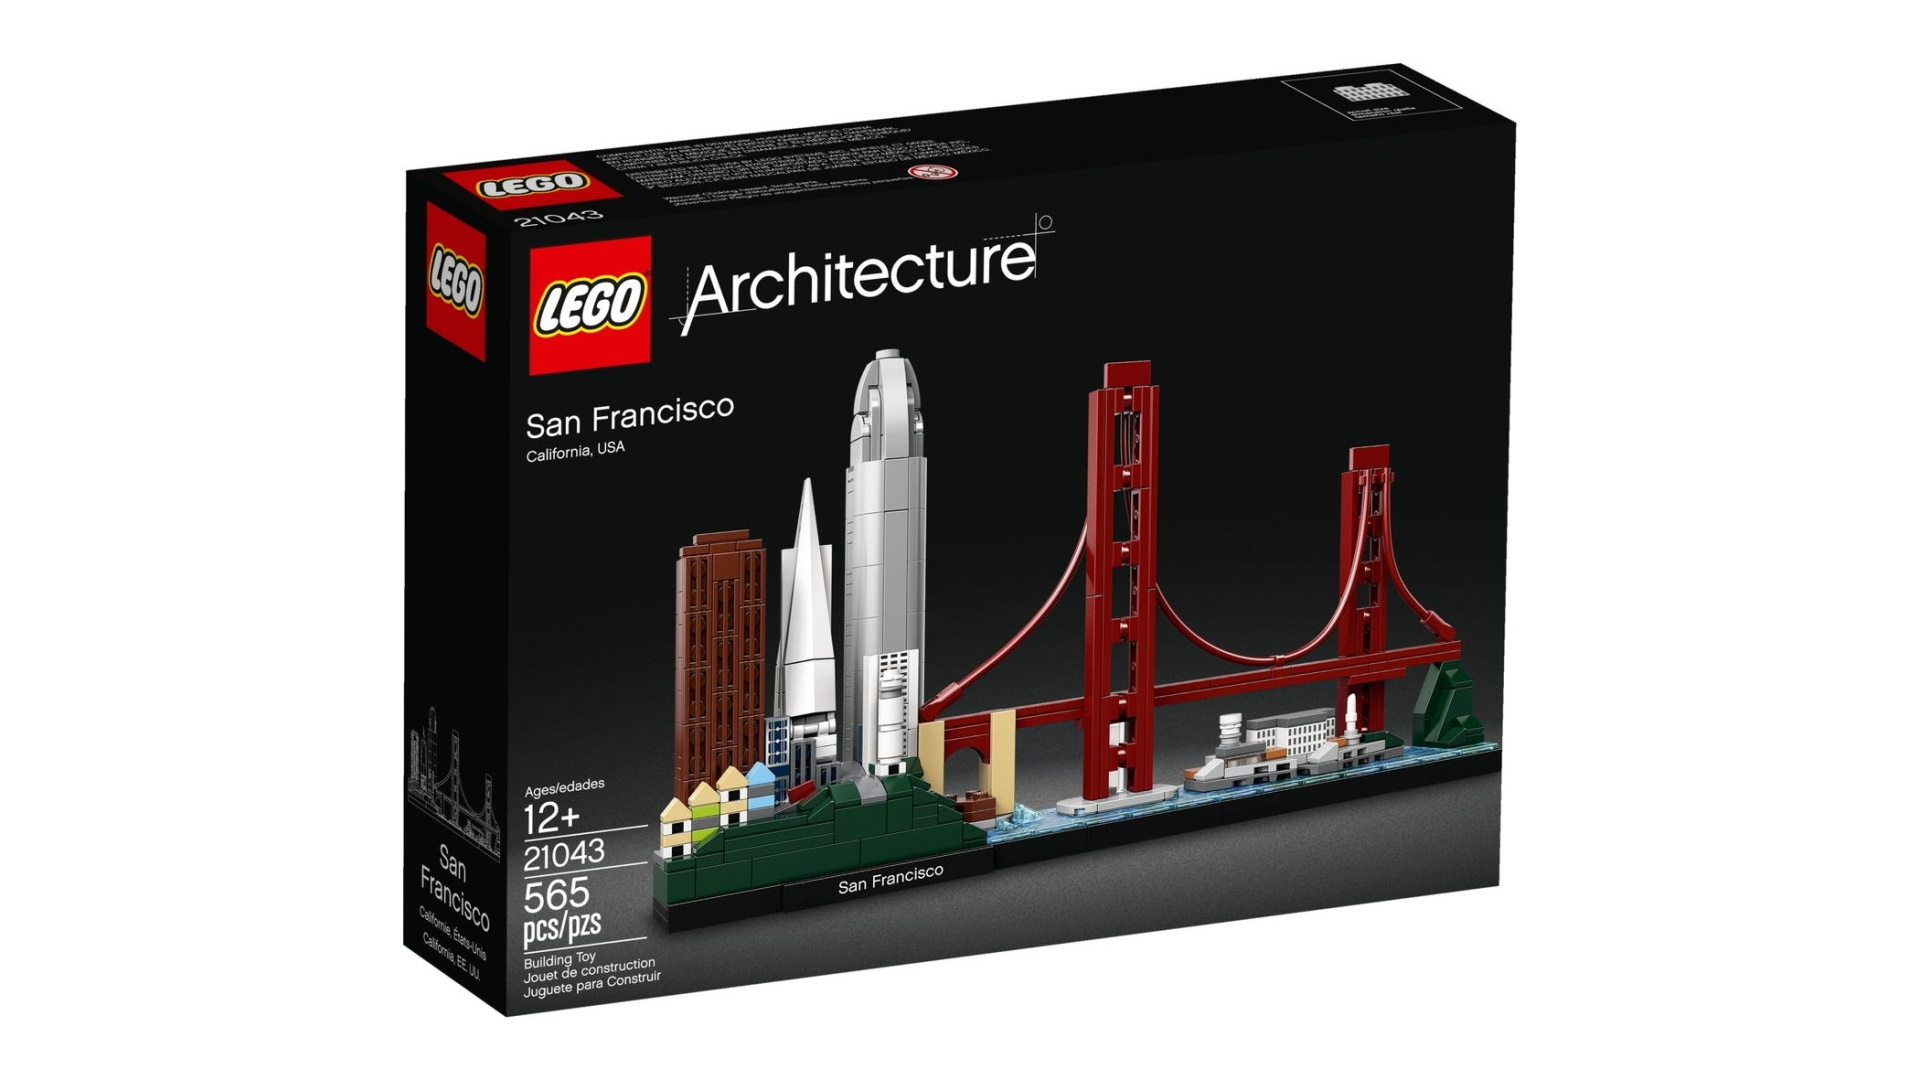 Lego Architecture set San Francisco